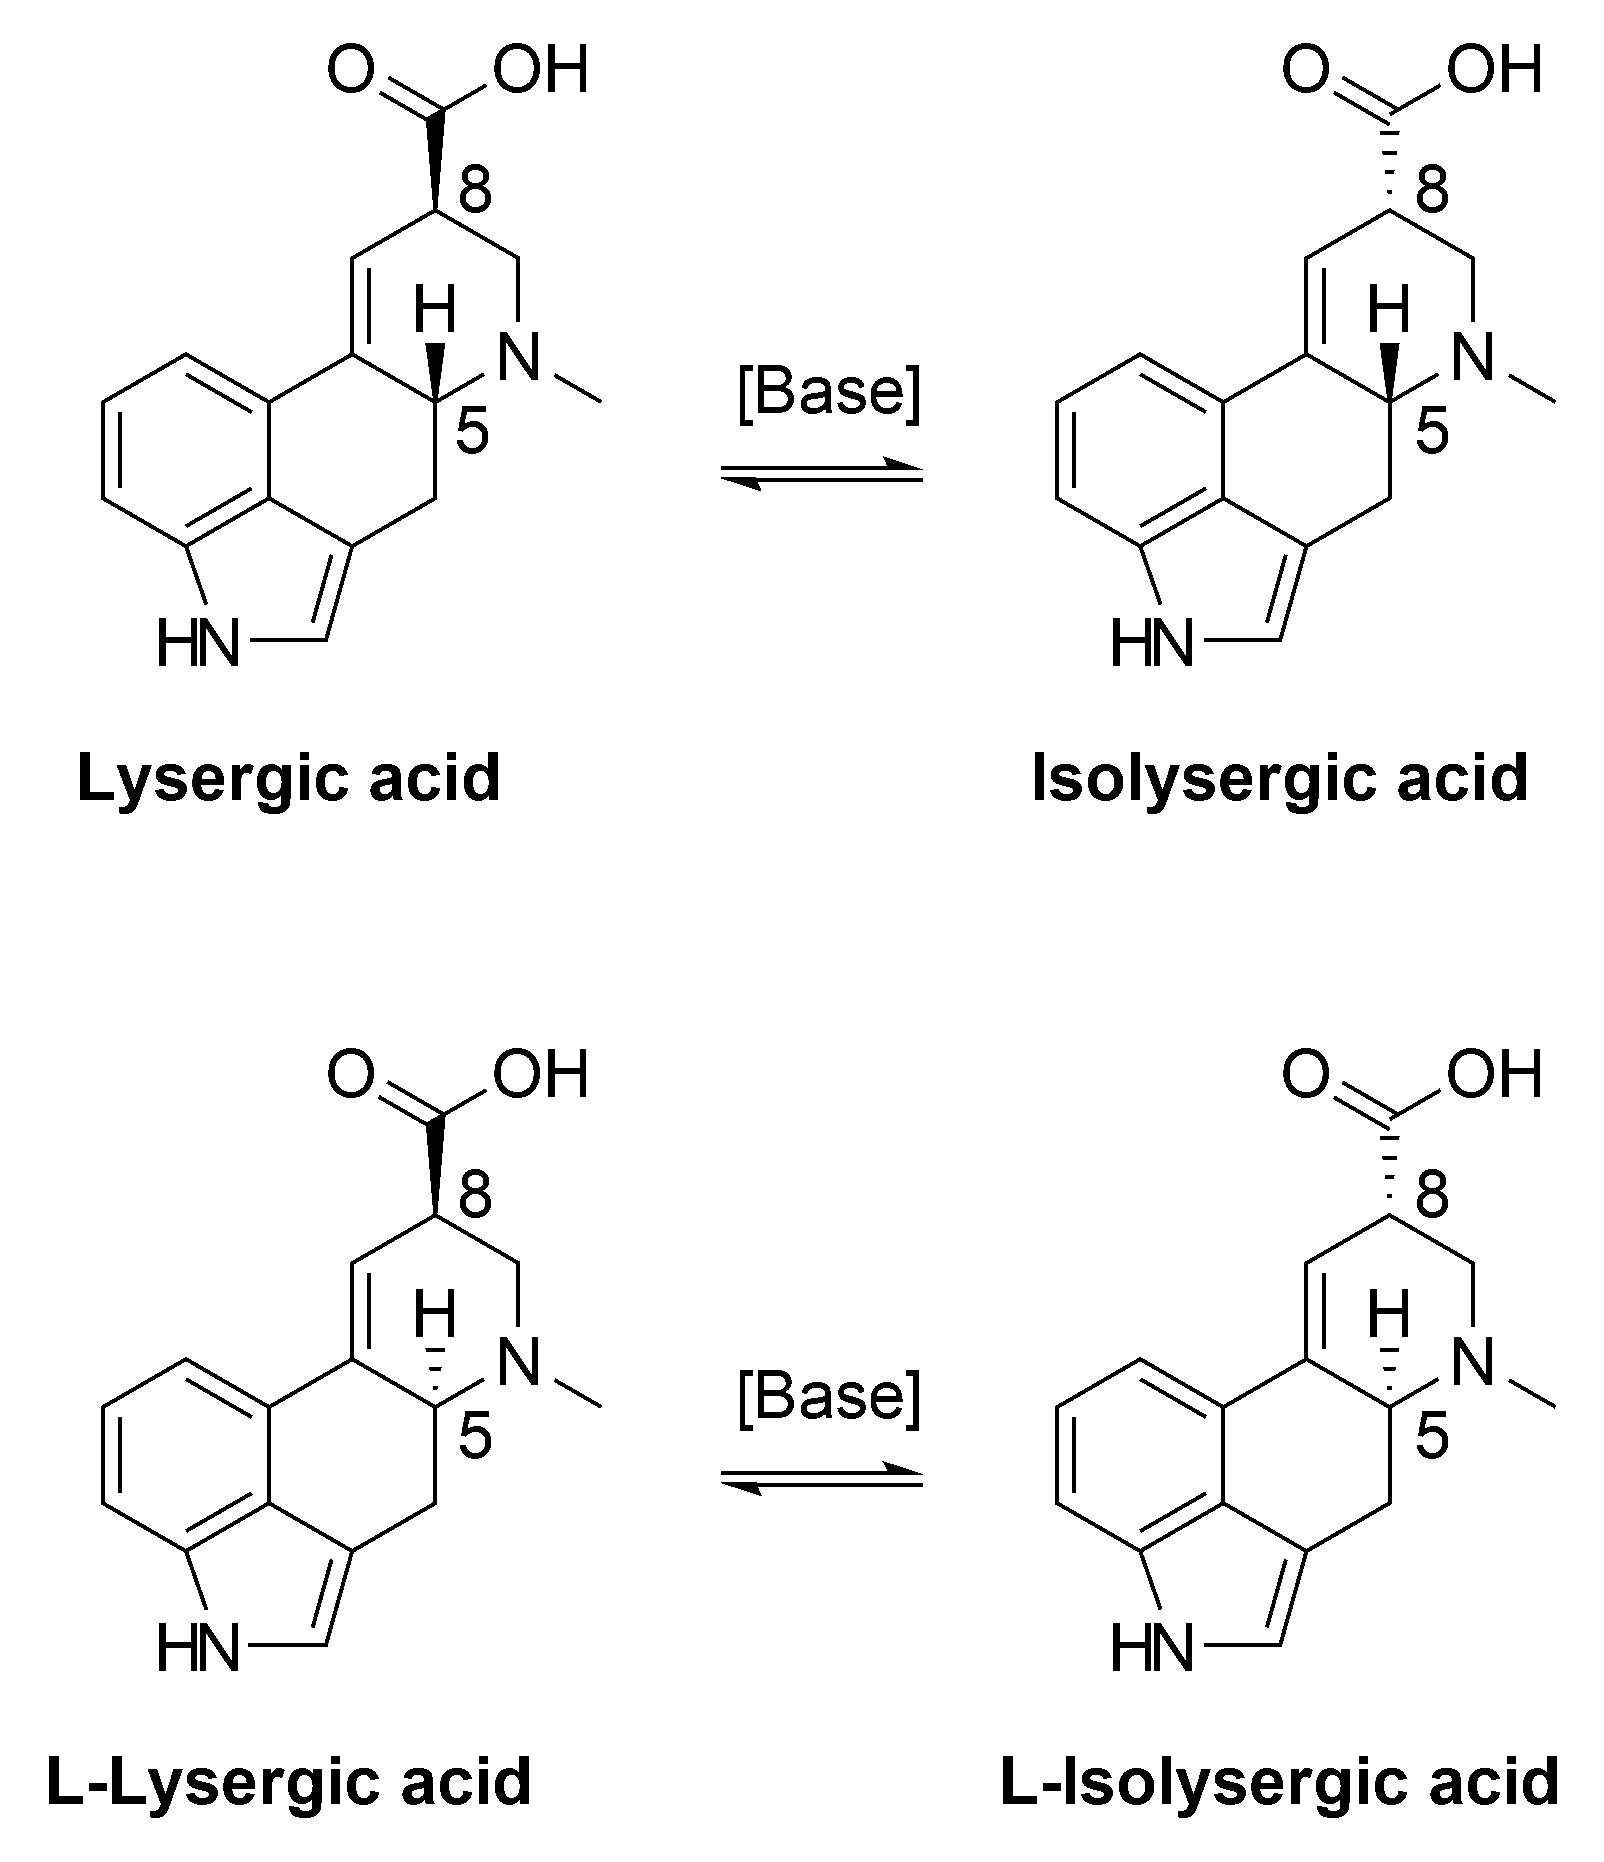 lysergic acid diethlyamide essay Boyd 1 amber boyd professor hoovler english 1a 13 november 2014 lysergic acid diethylamide lsd is one of the most powerful, mood-changing chemicals first.